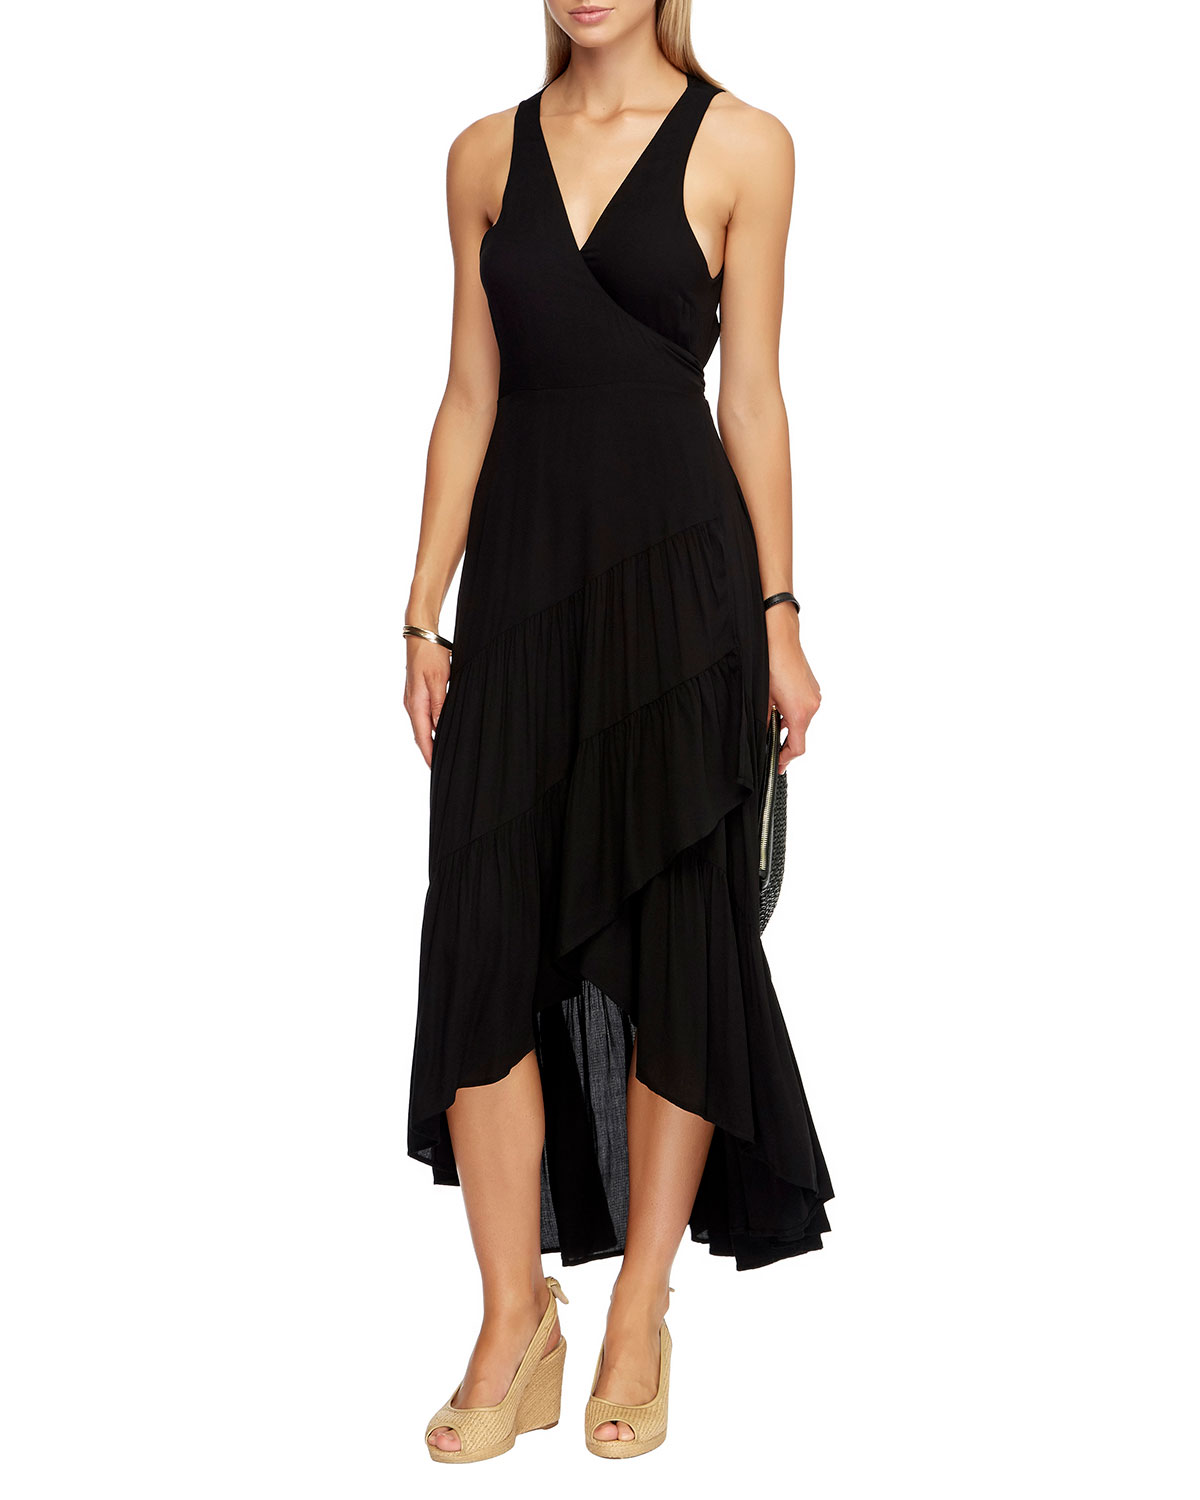 JETS by Jessika Allen Black Tiered High-Low Coverup Wrap Dress